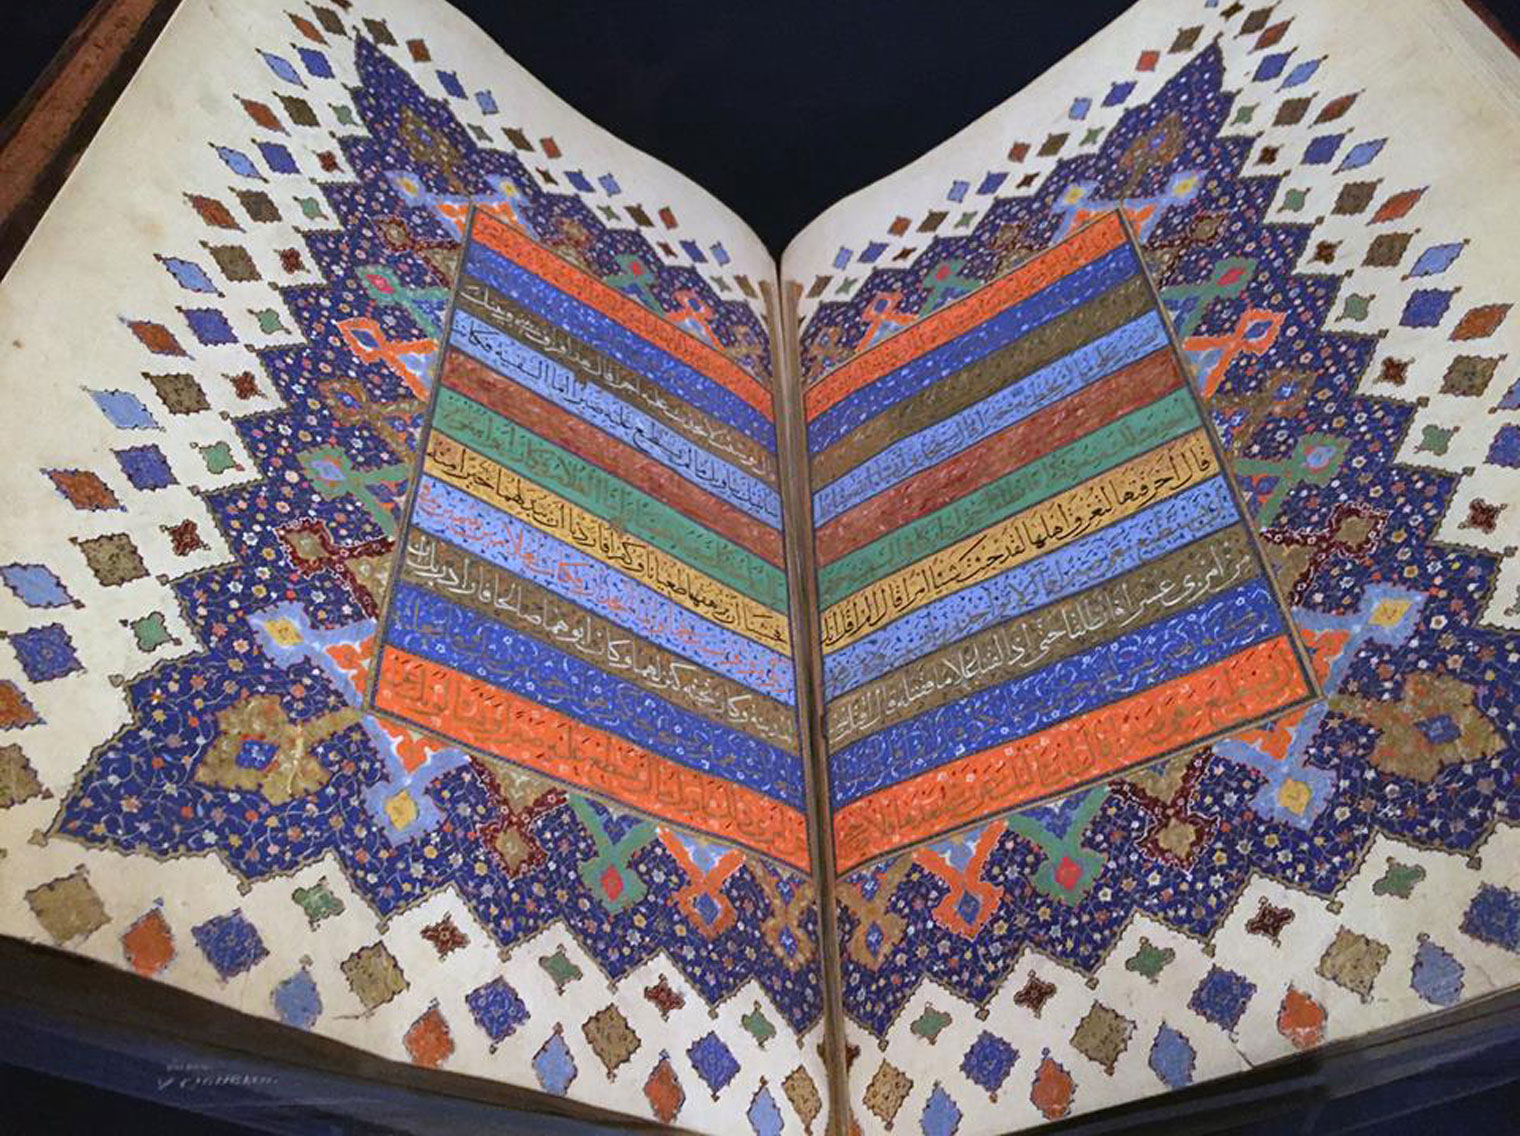 Art of the Qur'an